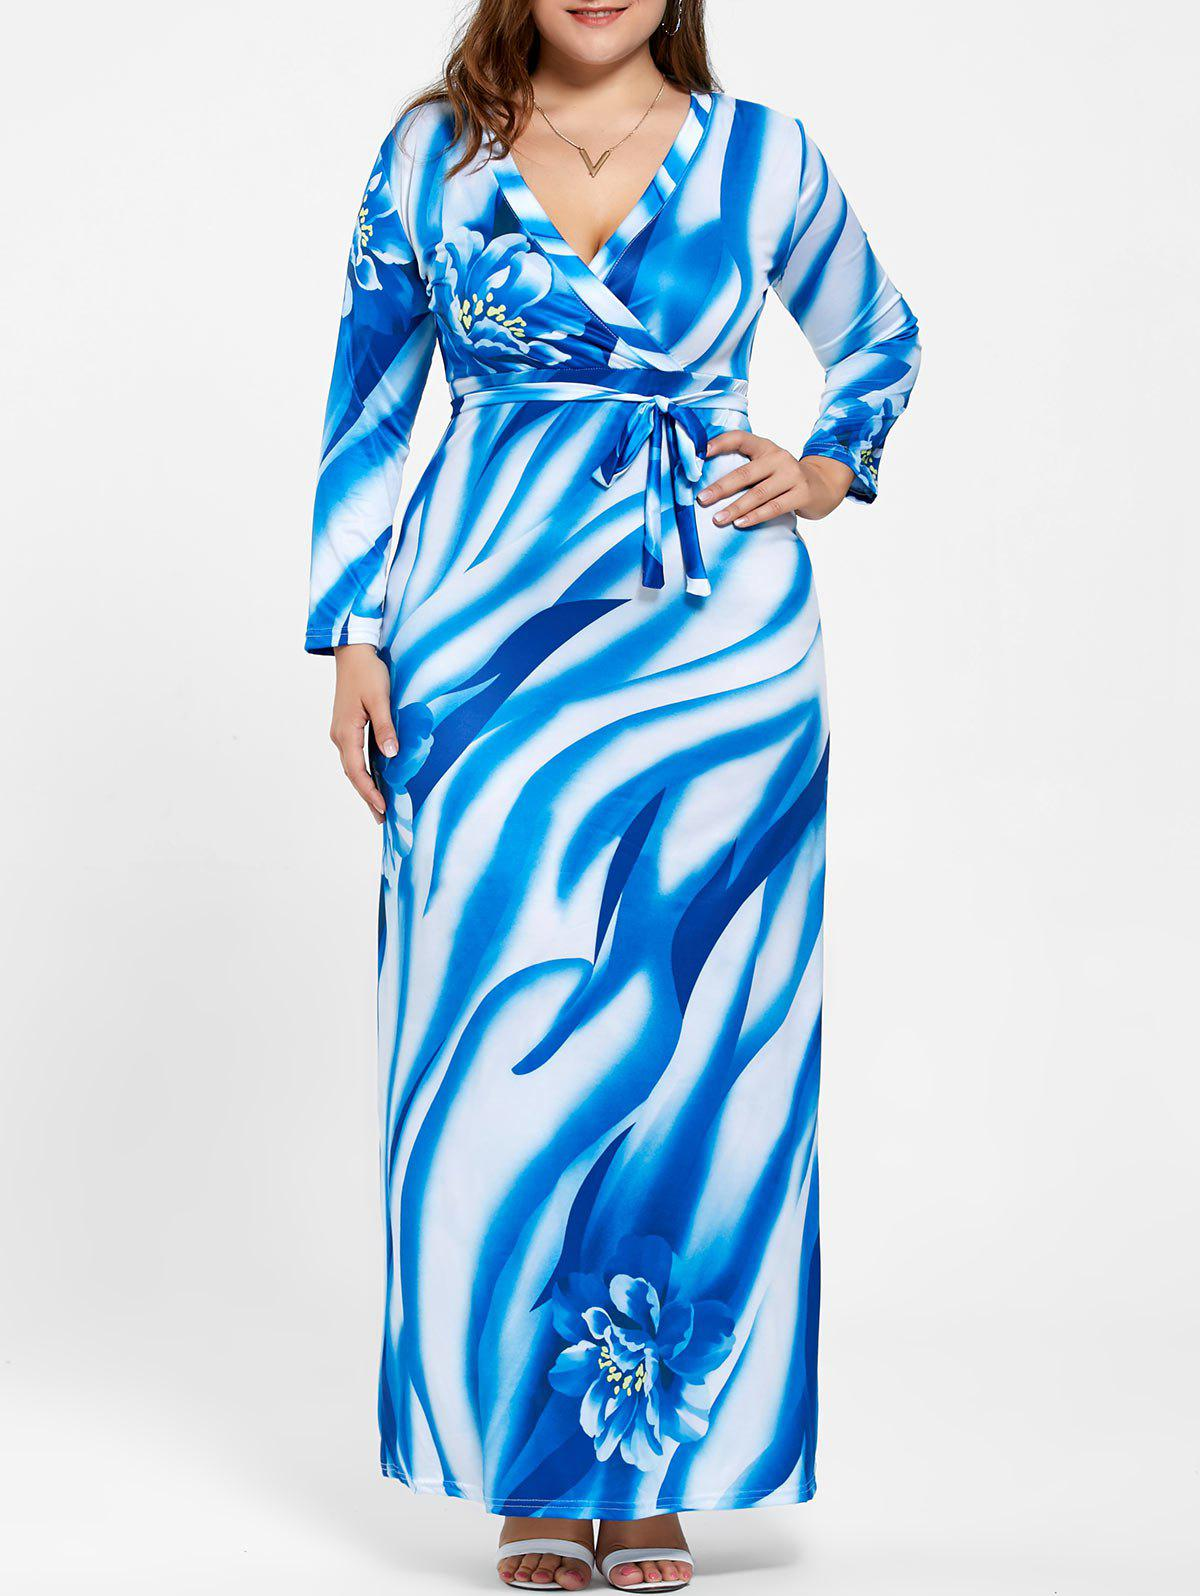 Plus Size Surplice Long Sleeve Print Pattern DressWOMEN<br><br>Size: 5XL; Color: BLUE; Style: Cute; Material: Nylon,Polyester,Spandex; Silhouette: A-Line; Dresses Length: Floor-Length; Neckline: Plunging Neck; Sleeve Length: Long Sleeves; Pattern Type: Floral; With Belt: Yes; Season: Fall,Spring; Weight: 0.4000kg; Package Contents: 1 x Dress  1 x Belt;